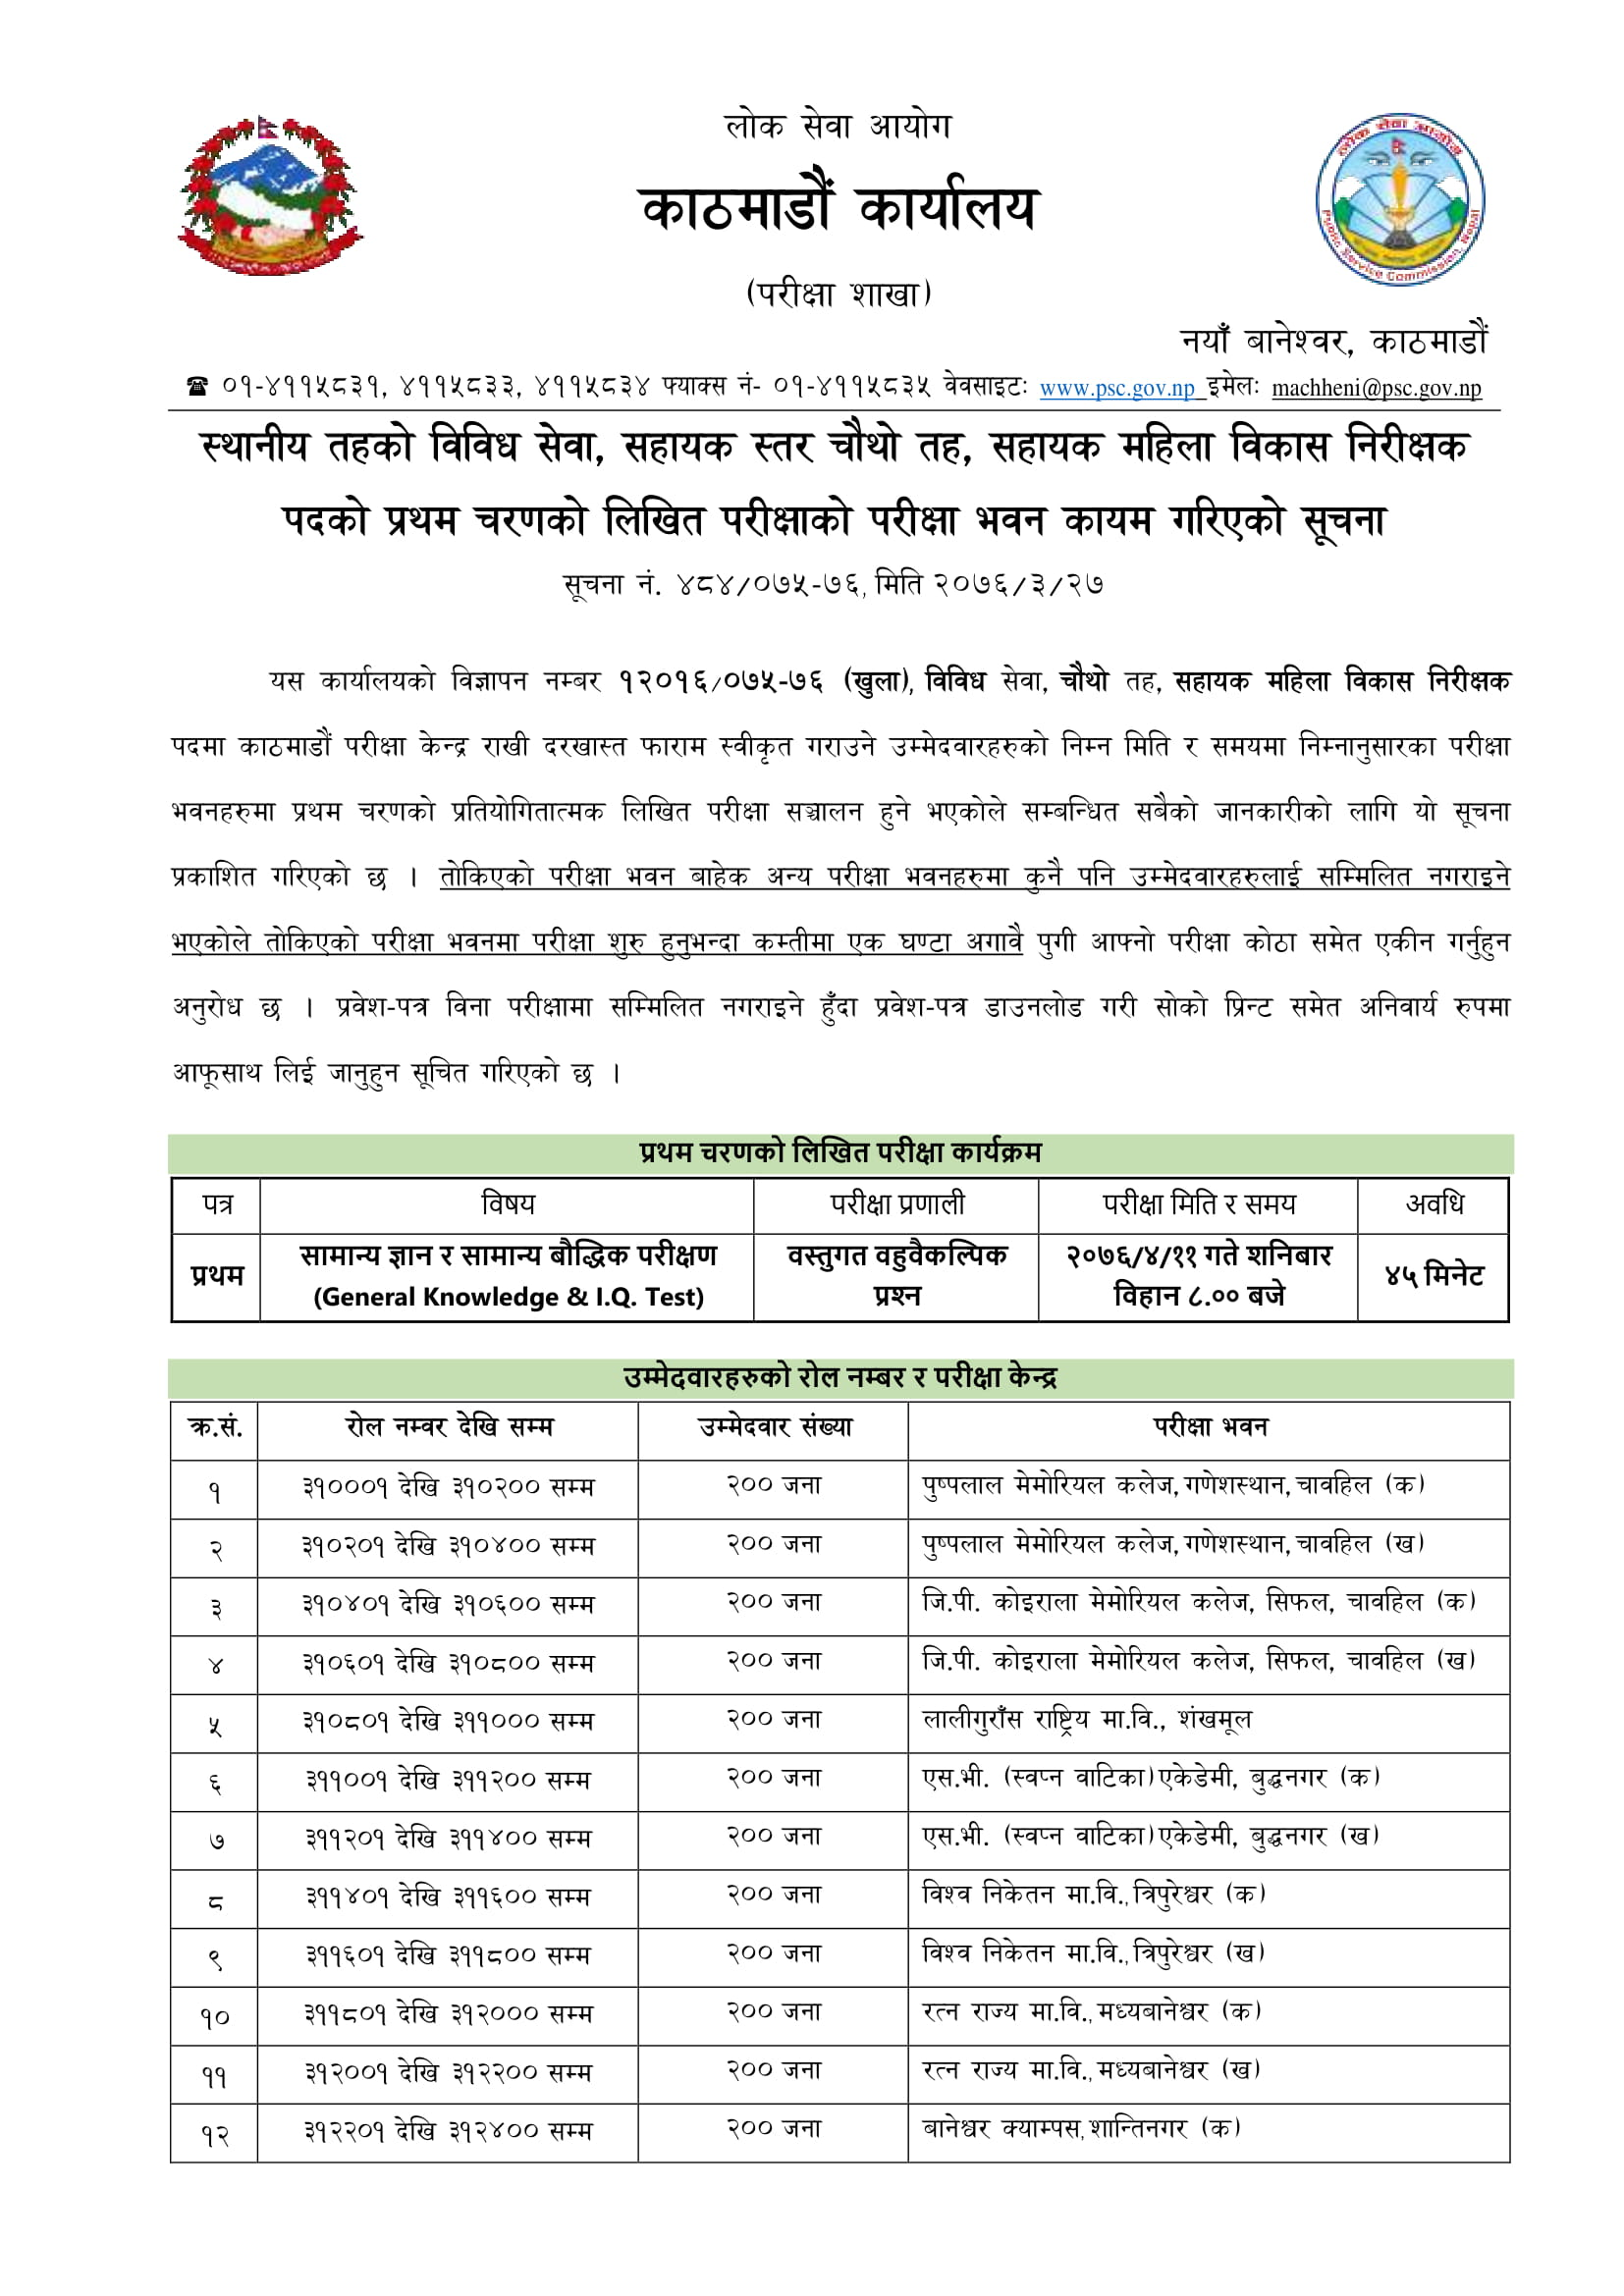 Lok Sewa Aayog Exam center 4th, PSC Exam Center 4th, Lok Sewa Exam Center 4th, Lok Sewa Aayog Exam center 4th 2076, PSC Exam Center 4th 2076, Lok Sewa Exam Center 4th 2076, Lok Sewa Aayog Exam center 5th, PSC Exam Center 5th, Lok Sewa Exam Center 5th, Lok Sewa Aayog Exam center 5th 2076, PSC Exam Center 5th 2076, Lok Sewa Exam Center 5th 2076, Lok Sewa Aayog Exam center 6th, PSC Exam Center 6th, Lok Sewa Exam Center 6th, Lok Sewa Aayog Exam center 6th 2076, PSC Exam Center 6th 2076, Lok Sewa Exam Center 6th 2076, Lok Sewa Aayog Exam center Prasa, PSC Exam Center Prasa, Lok Sewa Exam Center Prasa, Lok Sewa Aayog Exam center Prasa 2076, PSC Exam Center Prasa 2076, Lok Sewa Exam Center Prasa 2076, Lok Sewa Aayog Exam center , PSC Exam Center , Lok Sewa Exam Center ,